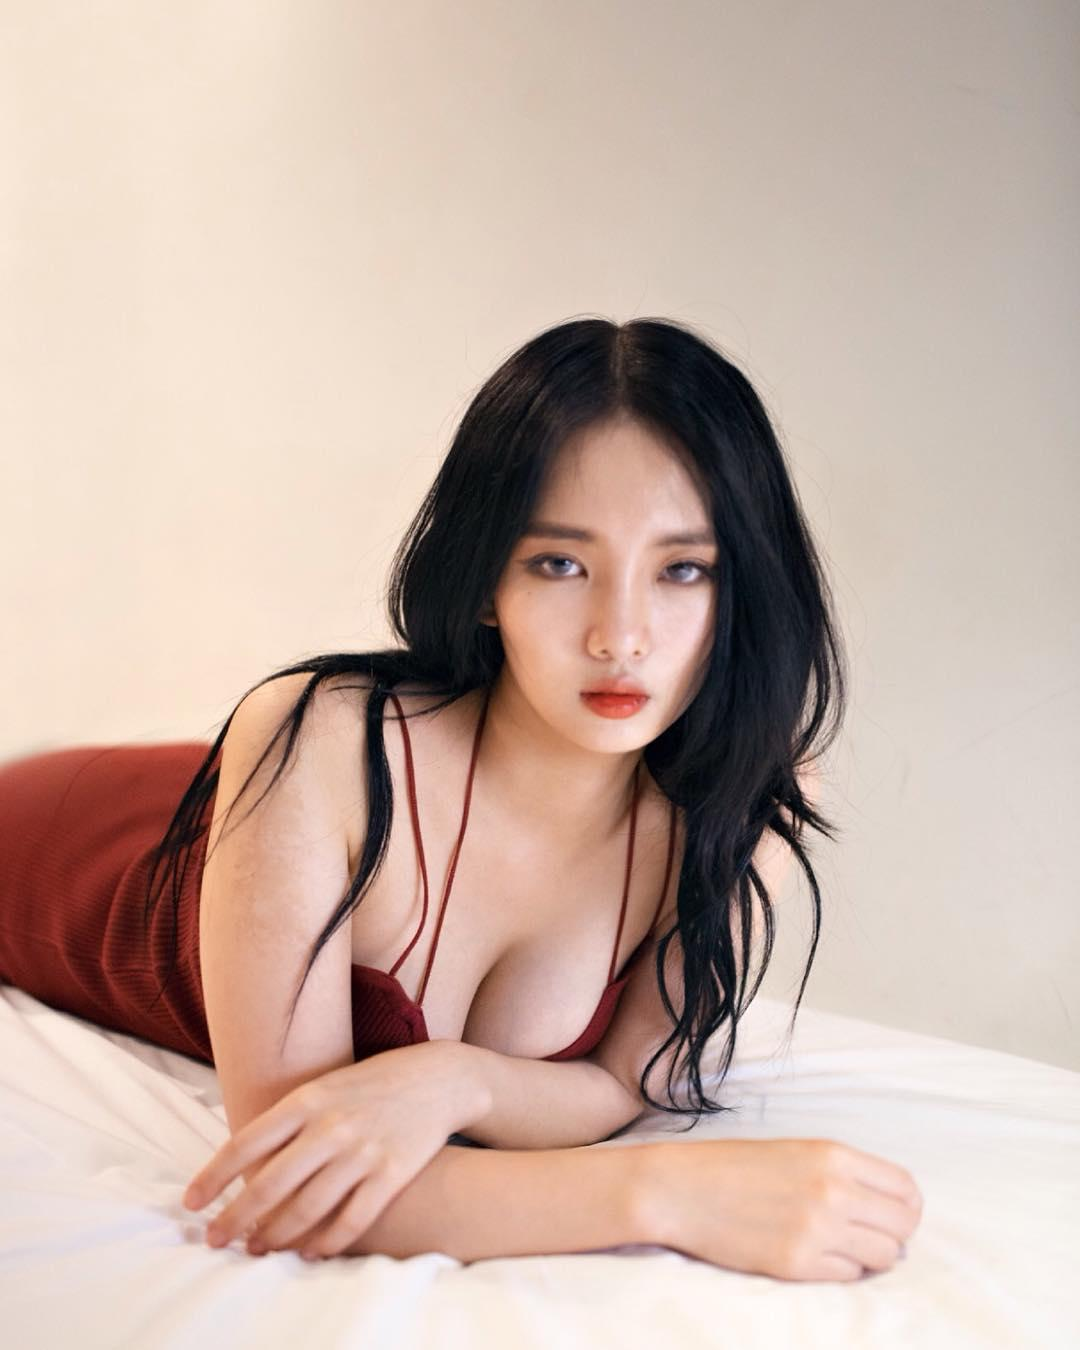 Jeee622 Huge Boobs Body Picture and Photo